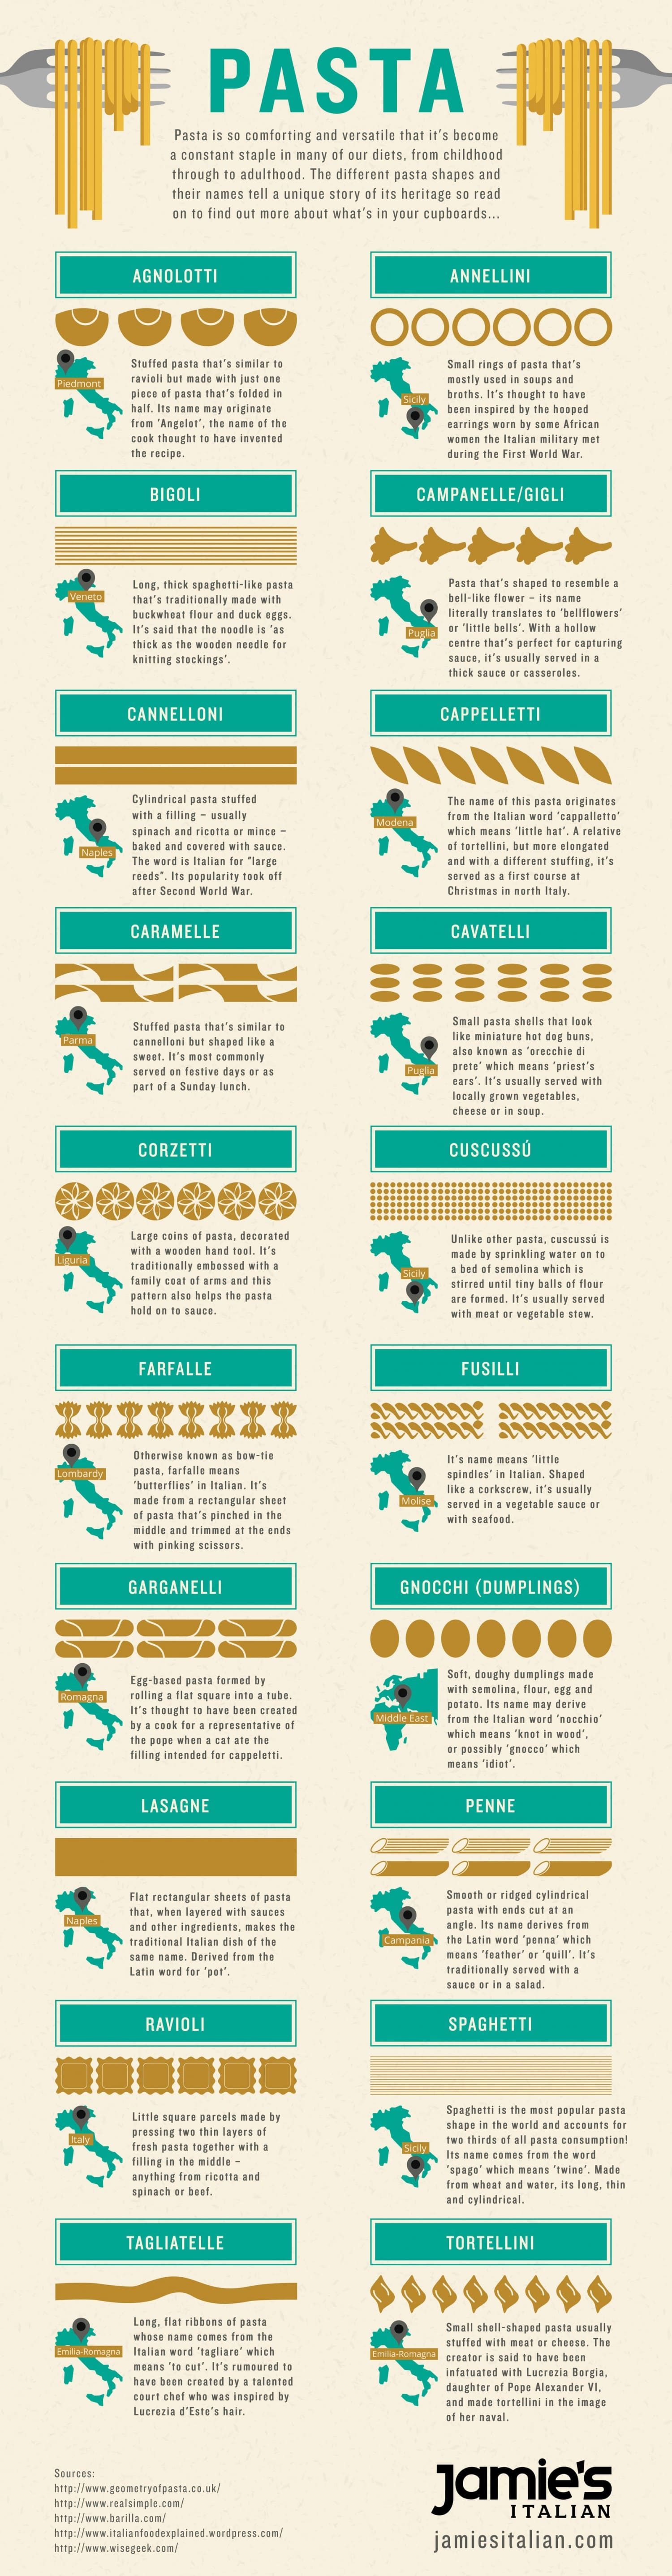 a-guide-to-pasta_5609694a8d6ae_w1500.jpg